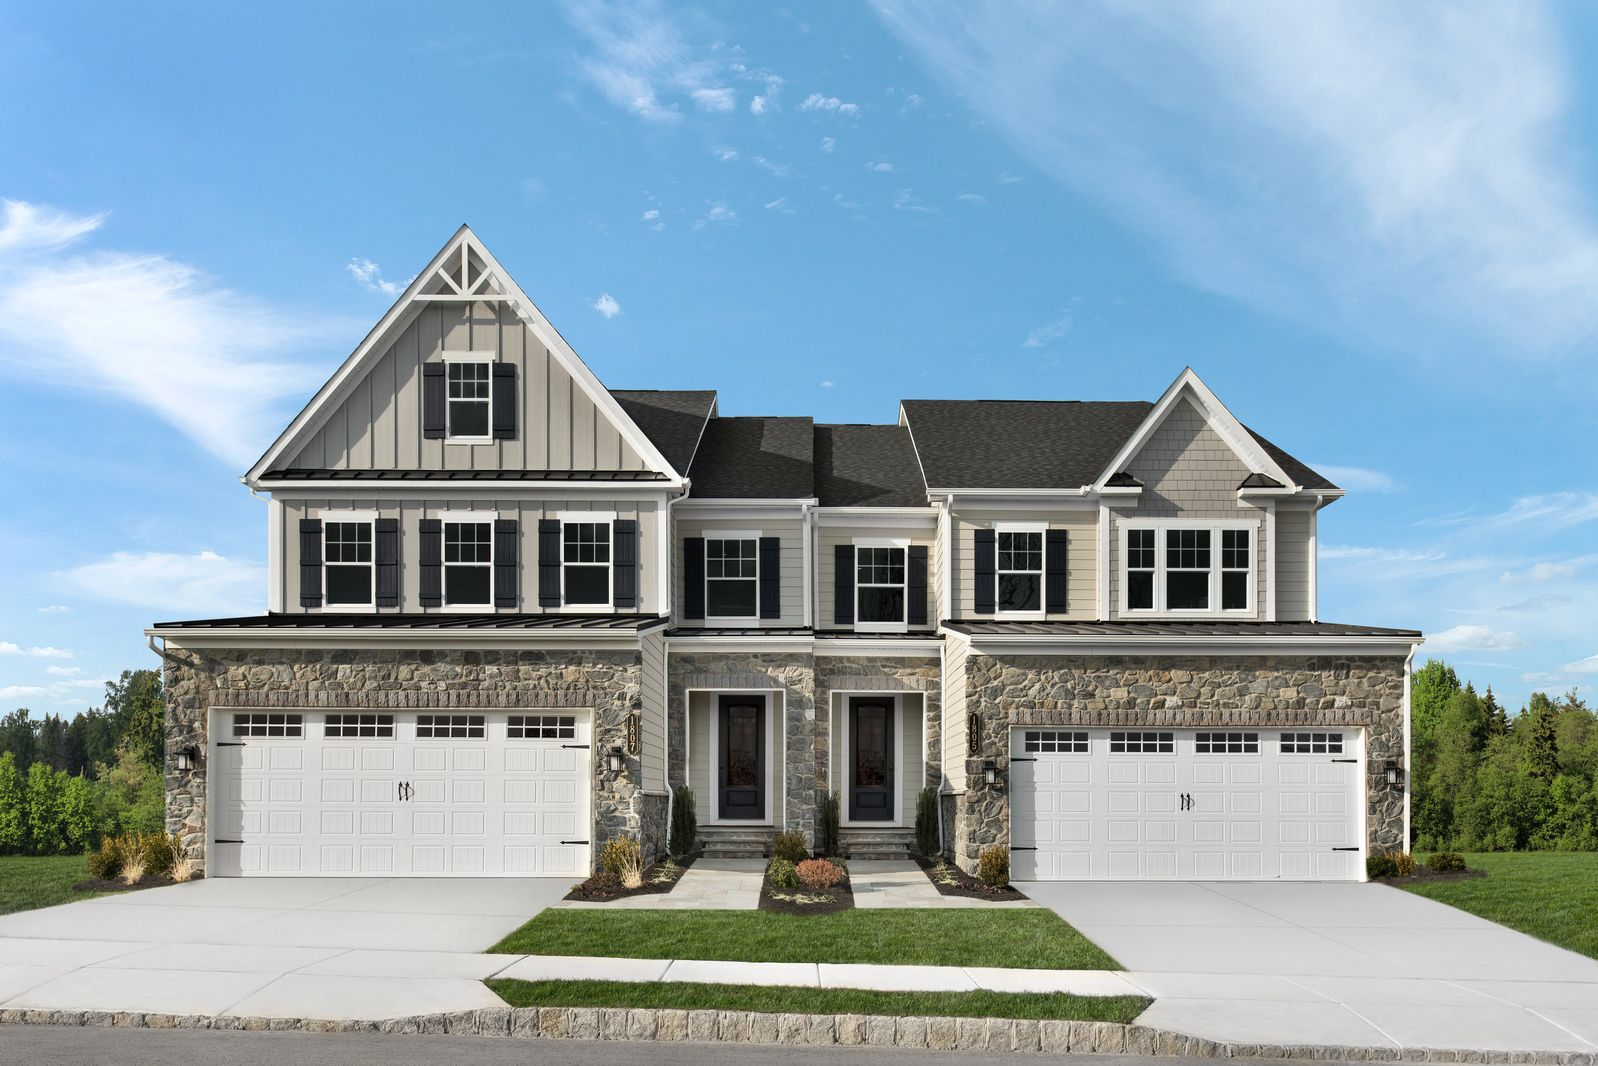 WELCOME TO GREYSTONE:The only new twin and townhomes with first-floor living available just 3 minutes from the West Chester Borough.Schedule your appointment today.